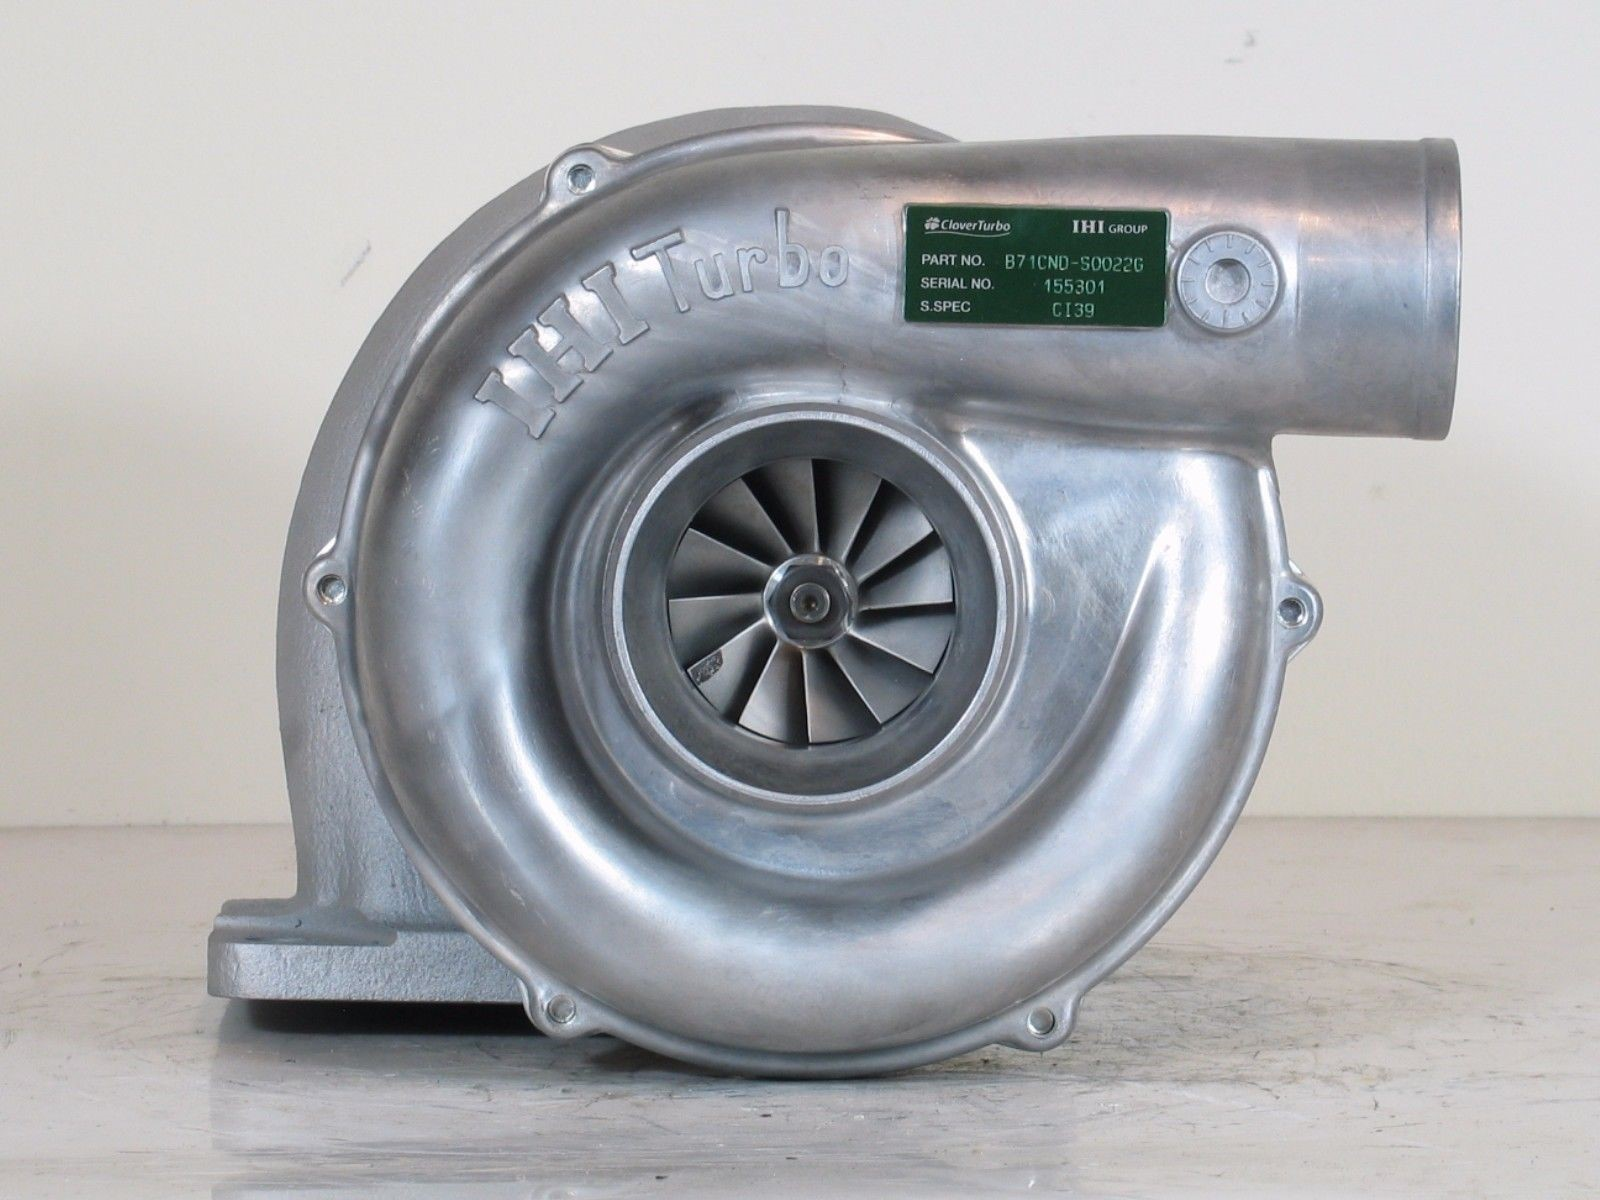 """""""Over these years, trucks have become vastly more efficient and productive. Engine size has come down by a third while power has increased by 20% and torque has hugely increased by 52%. The rate of tons delivered in available hours is immensely superior today,"""" says Scott – and the turbocharger has played a major role in these advancements."""